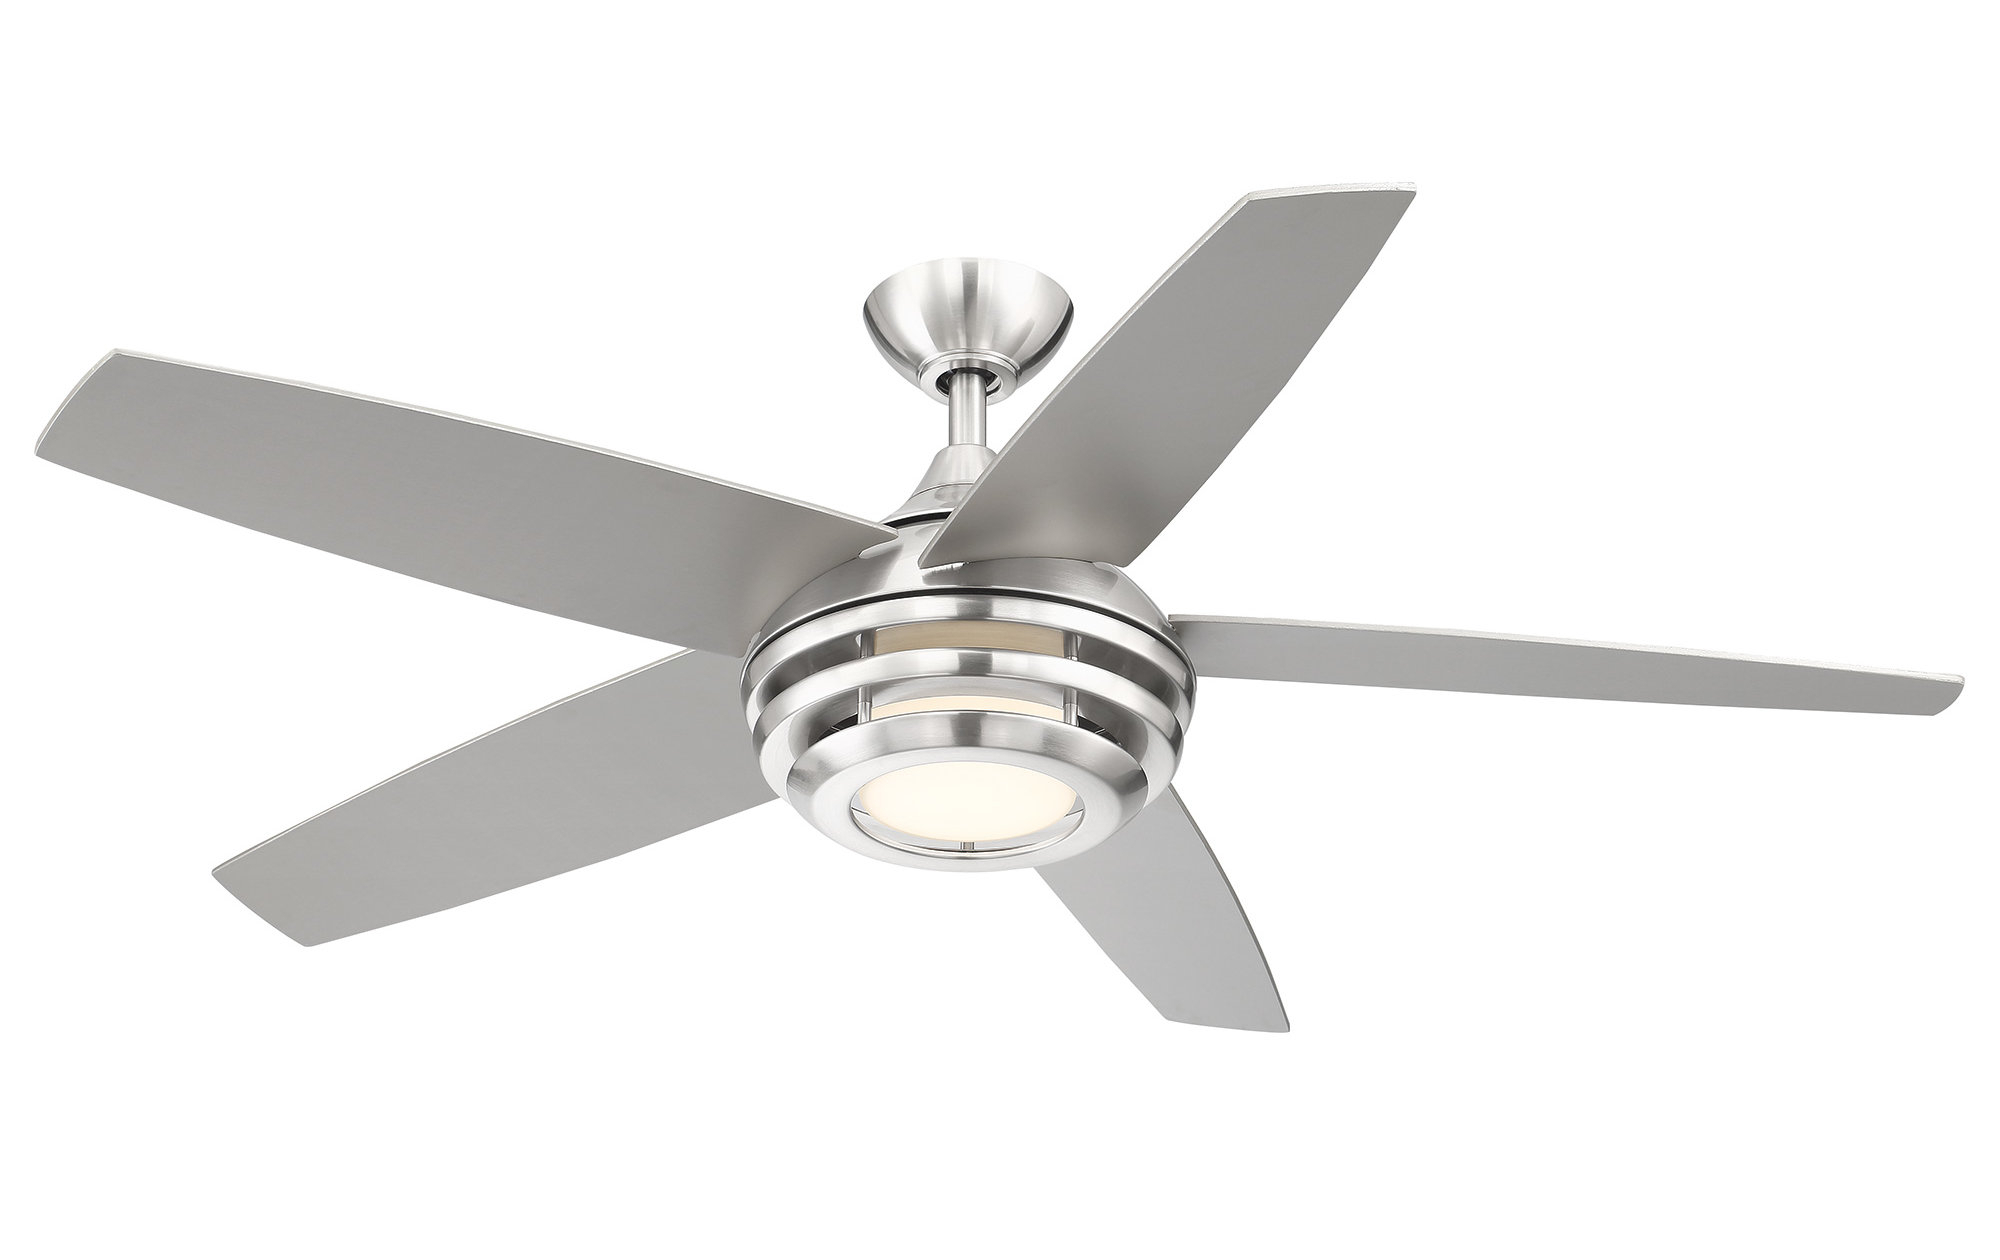 Staton 5 Blade Led Ceiling Fan With Remote For Well Known Cedarton Hugger 5 Blade Led Ceiling Fans (View 19 of 20)